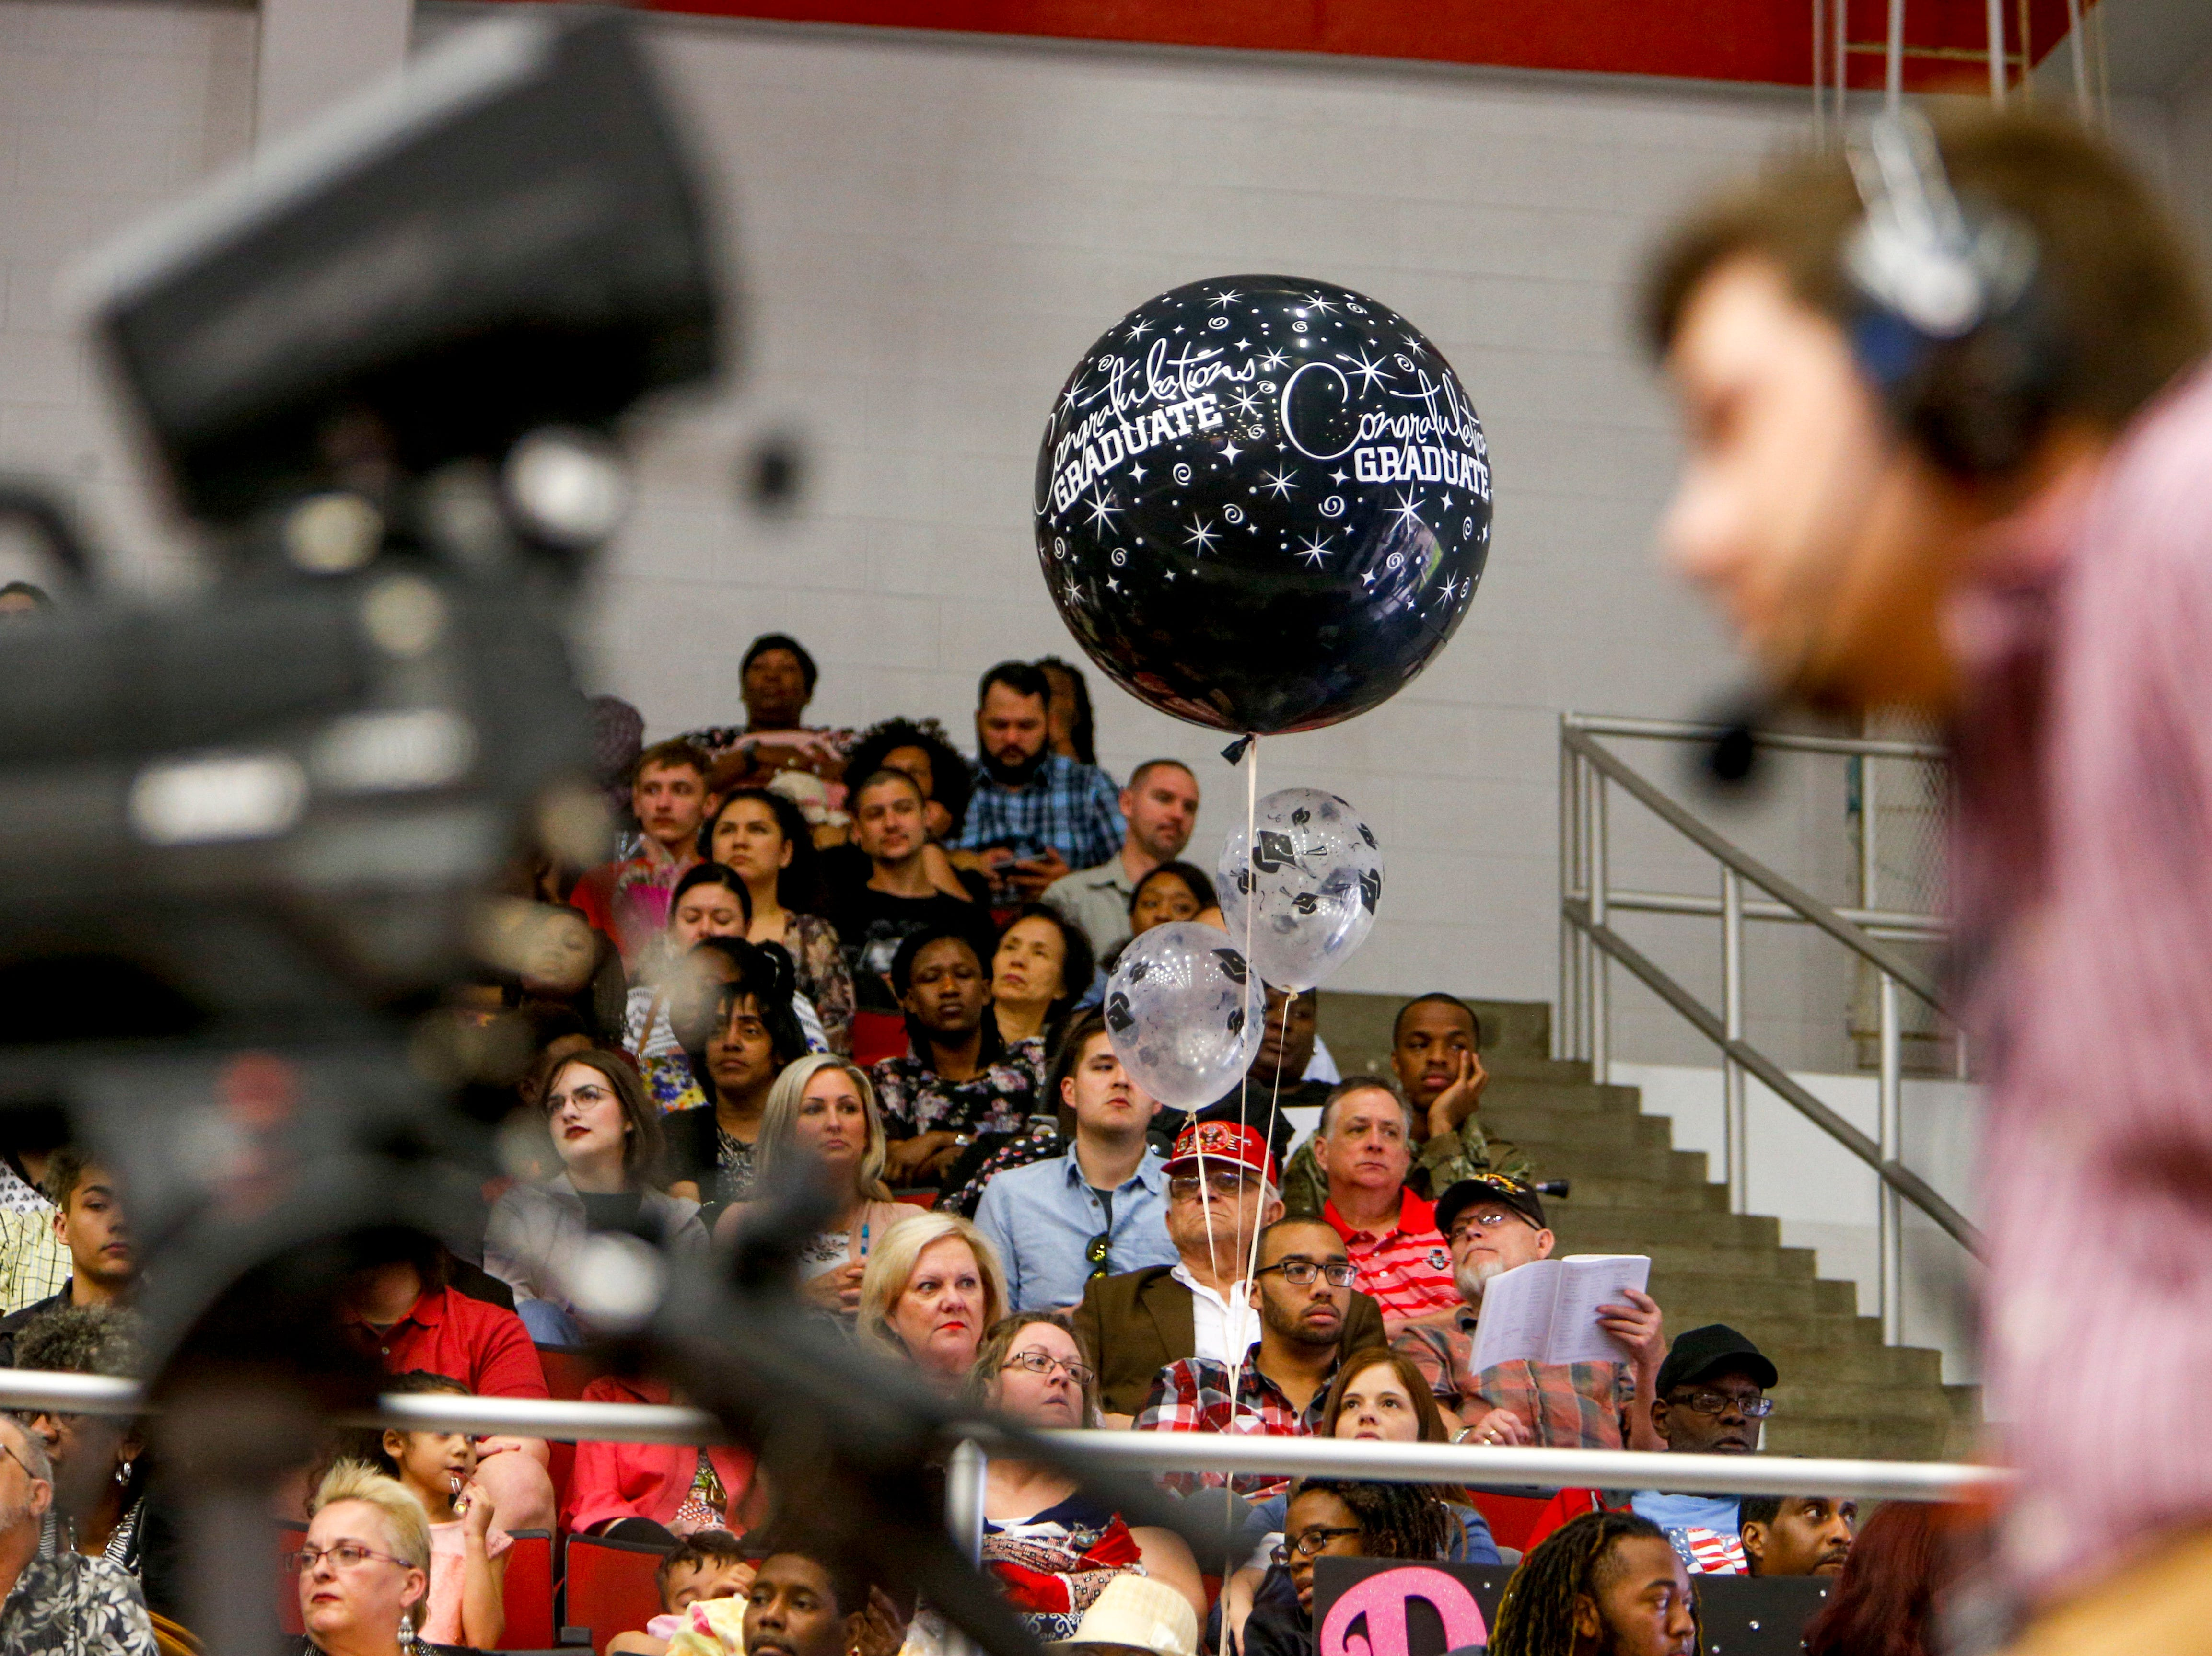 A large balloon floats above the crowd watching students receive diplomas at the Austin Peay spring commencement ceremony 2019 for College of Business and College of STEM at Winfield Dunn Center in Clarksville, Tenn., on Friday, May 3, 2019.